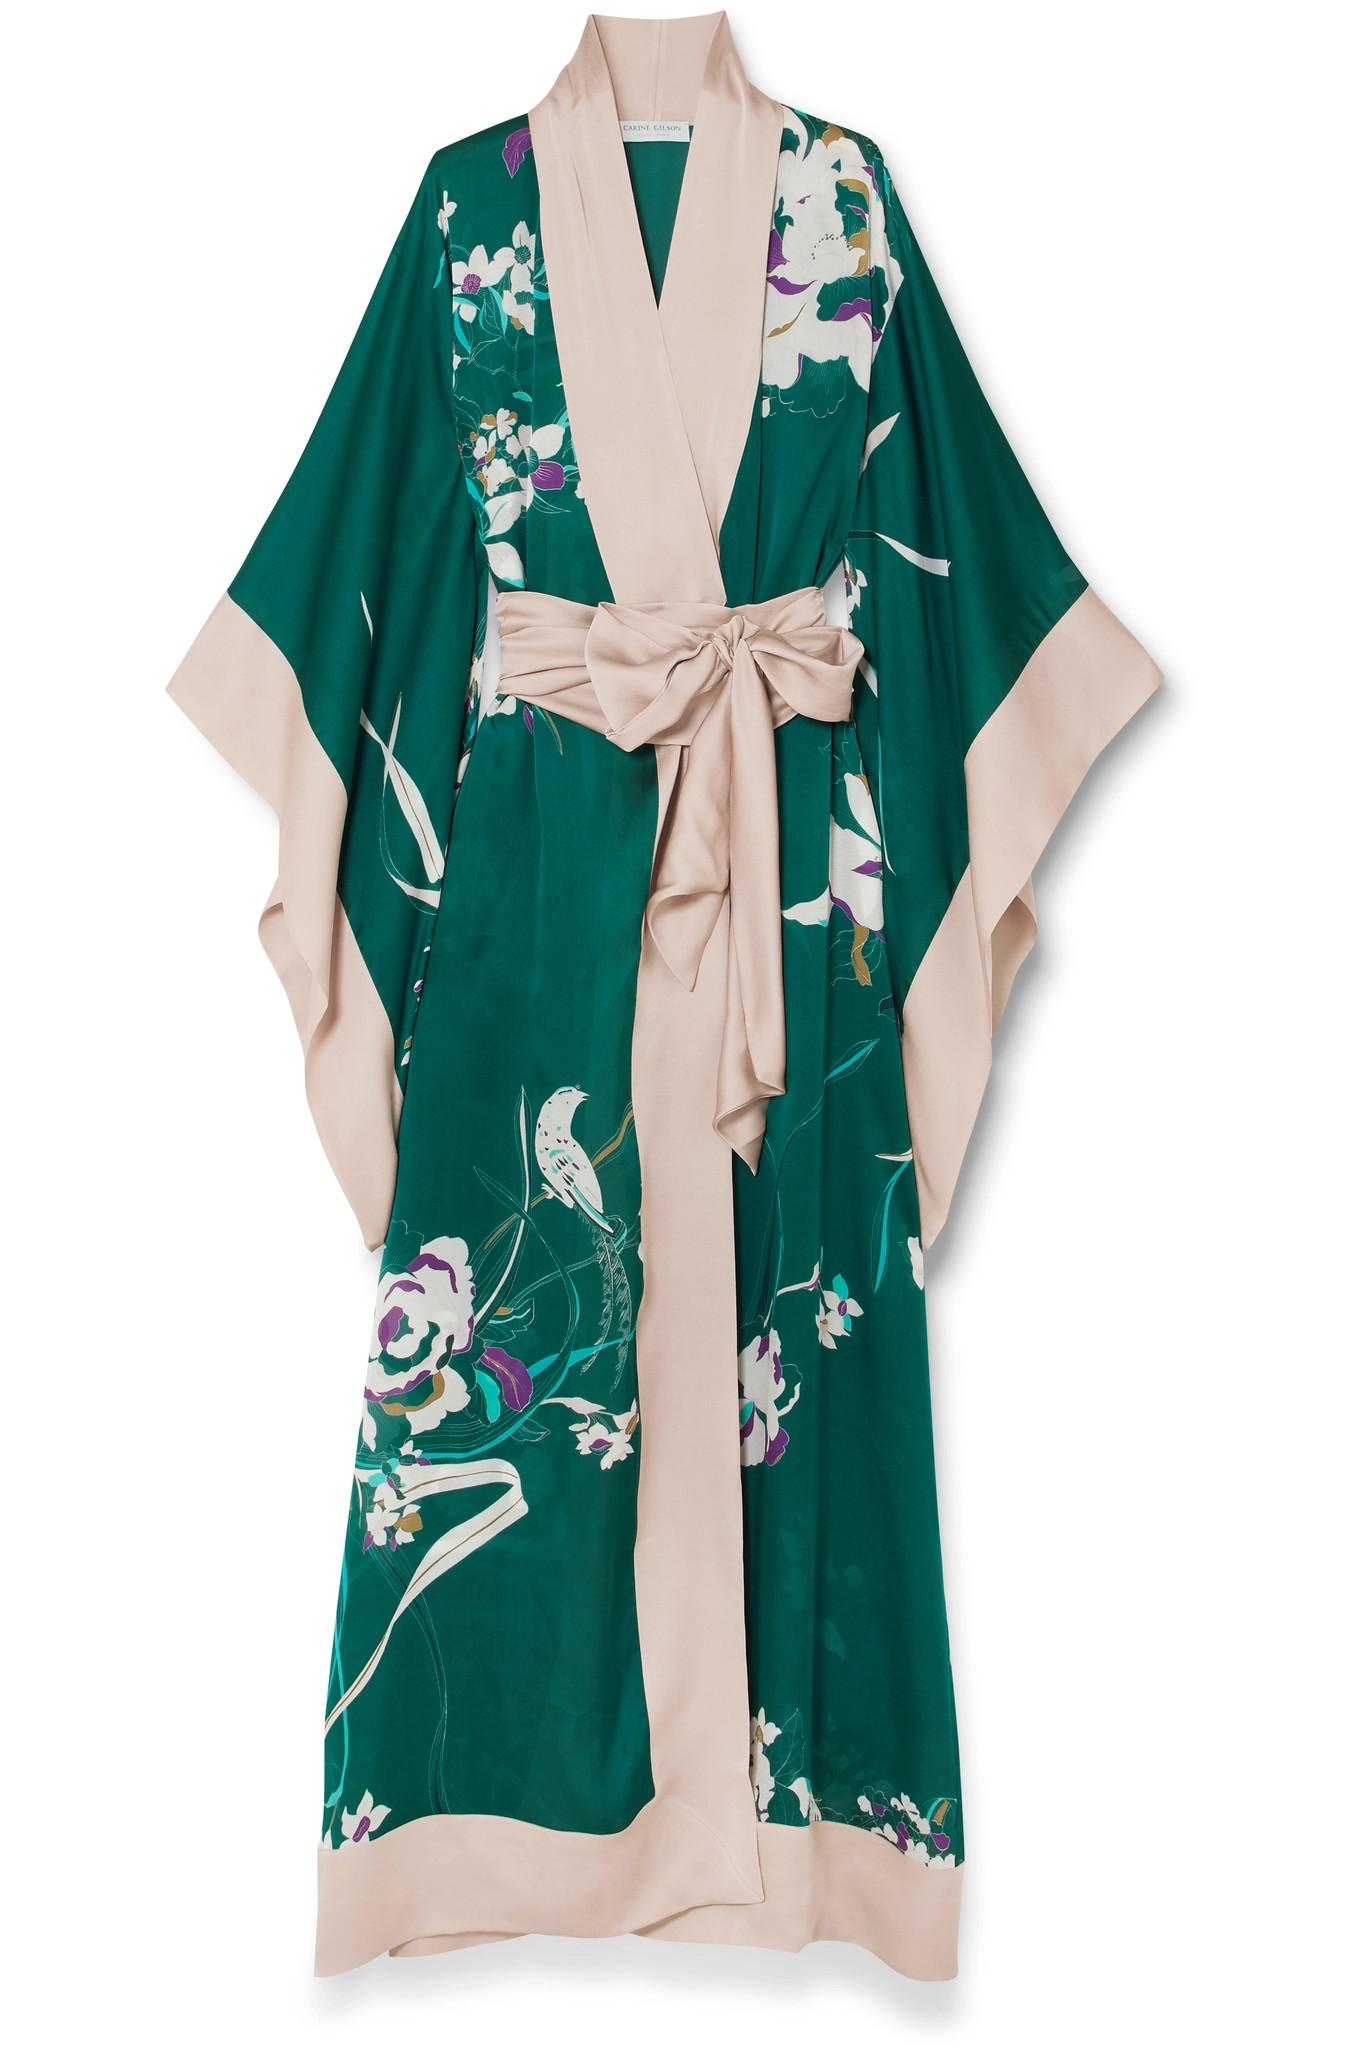 For Cheap For Sale Excellent Online Printed Silk-satin Robe - Emerald Carine Gilson 39BA8e